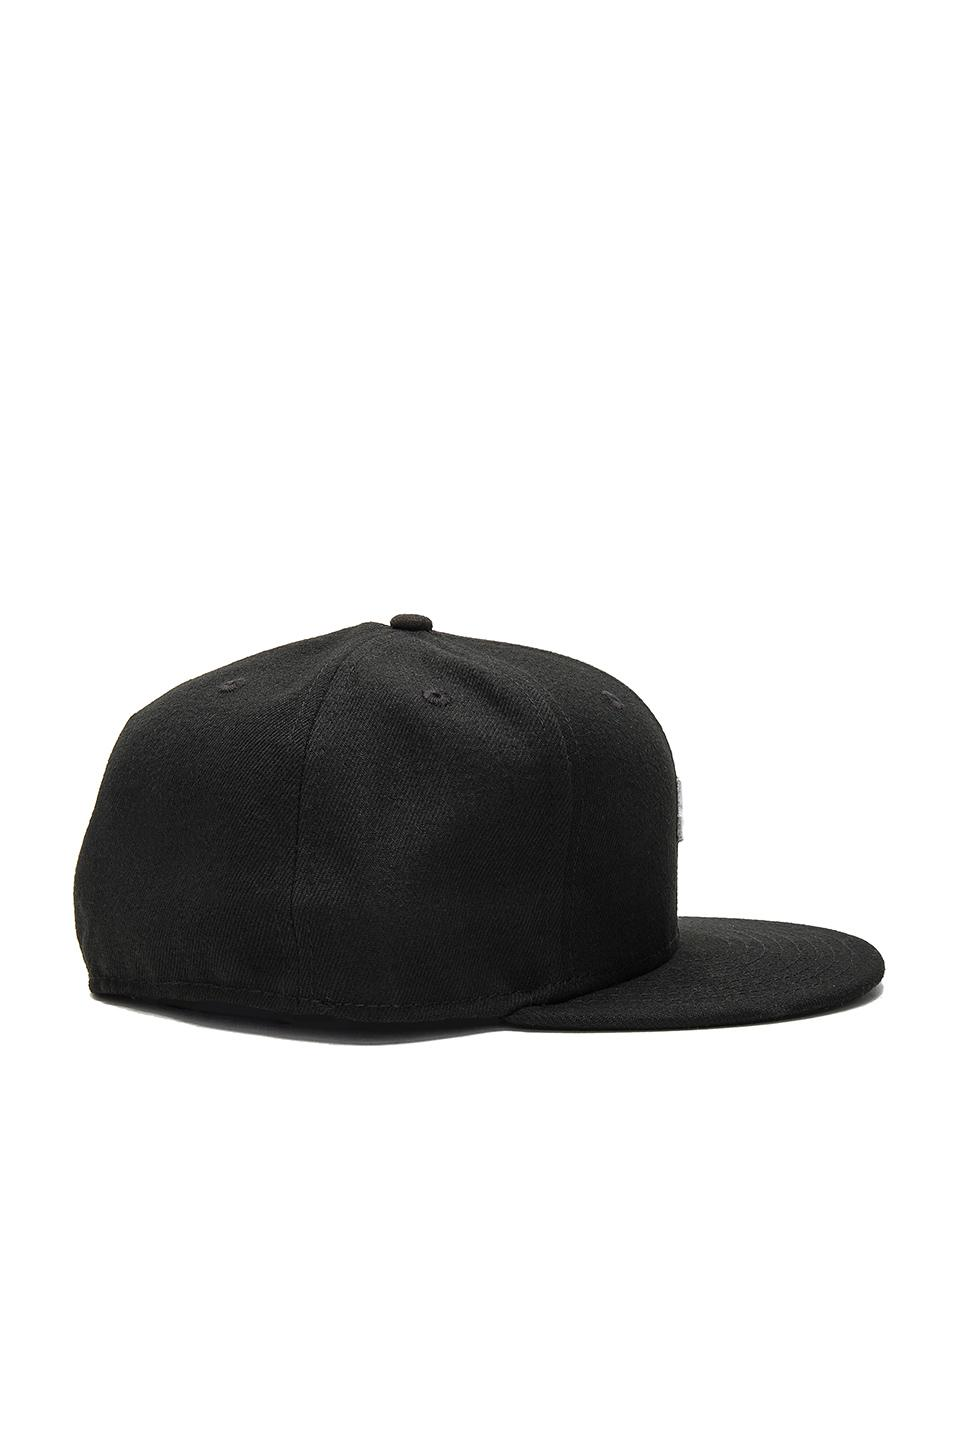 Lyst - Undefeated Small 5 Strike Ne Cap in Black for Men a08b71614875